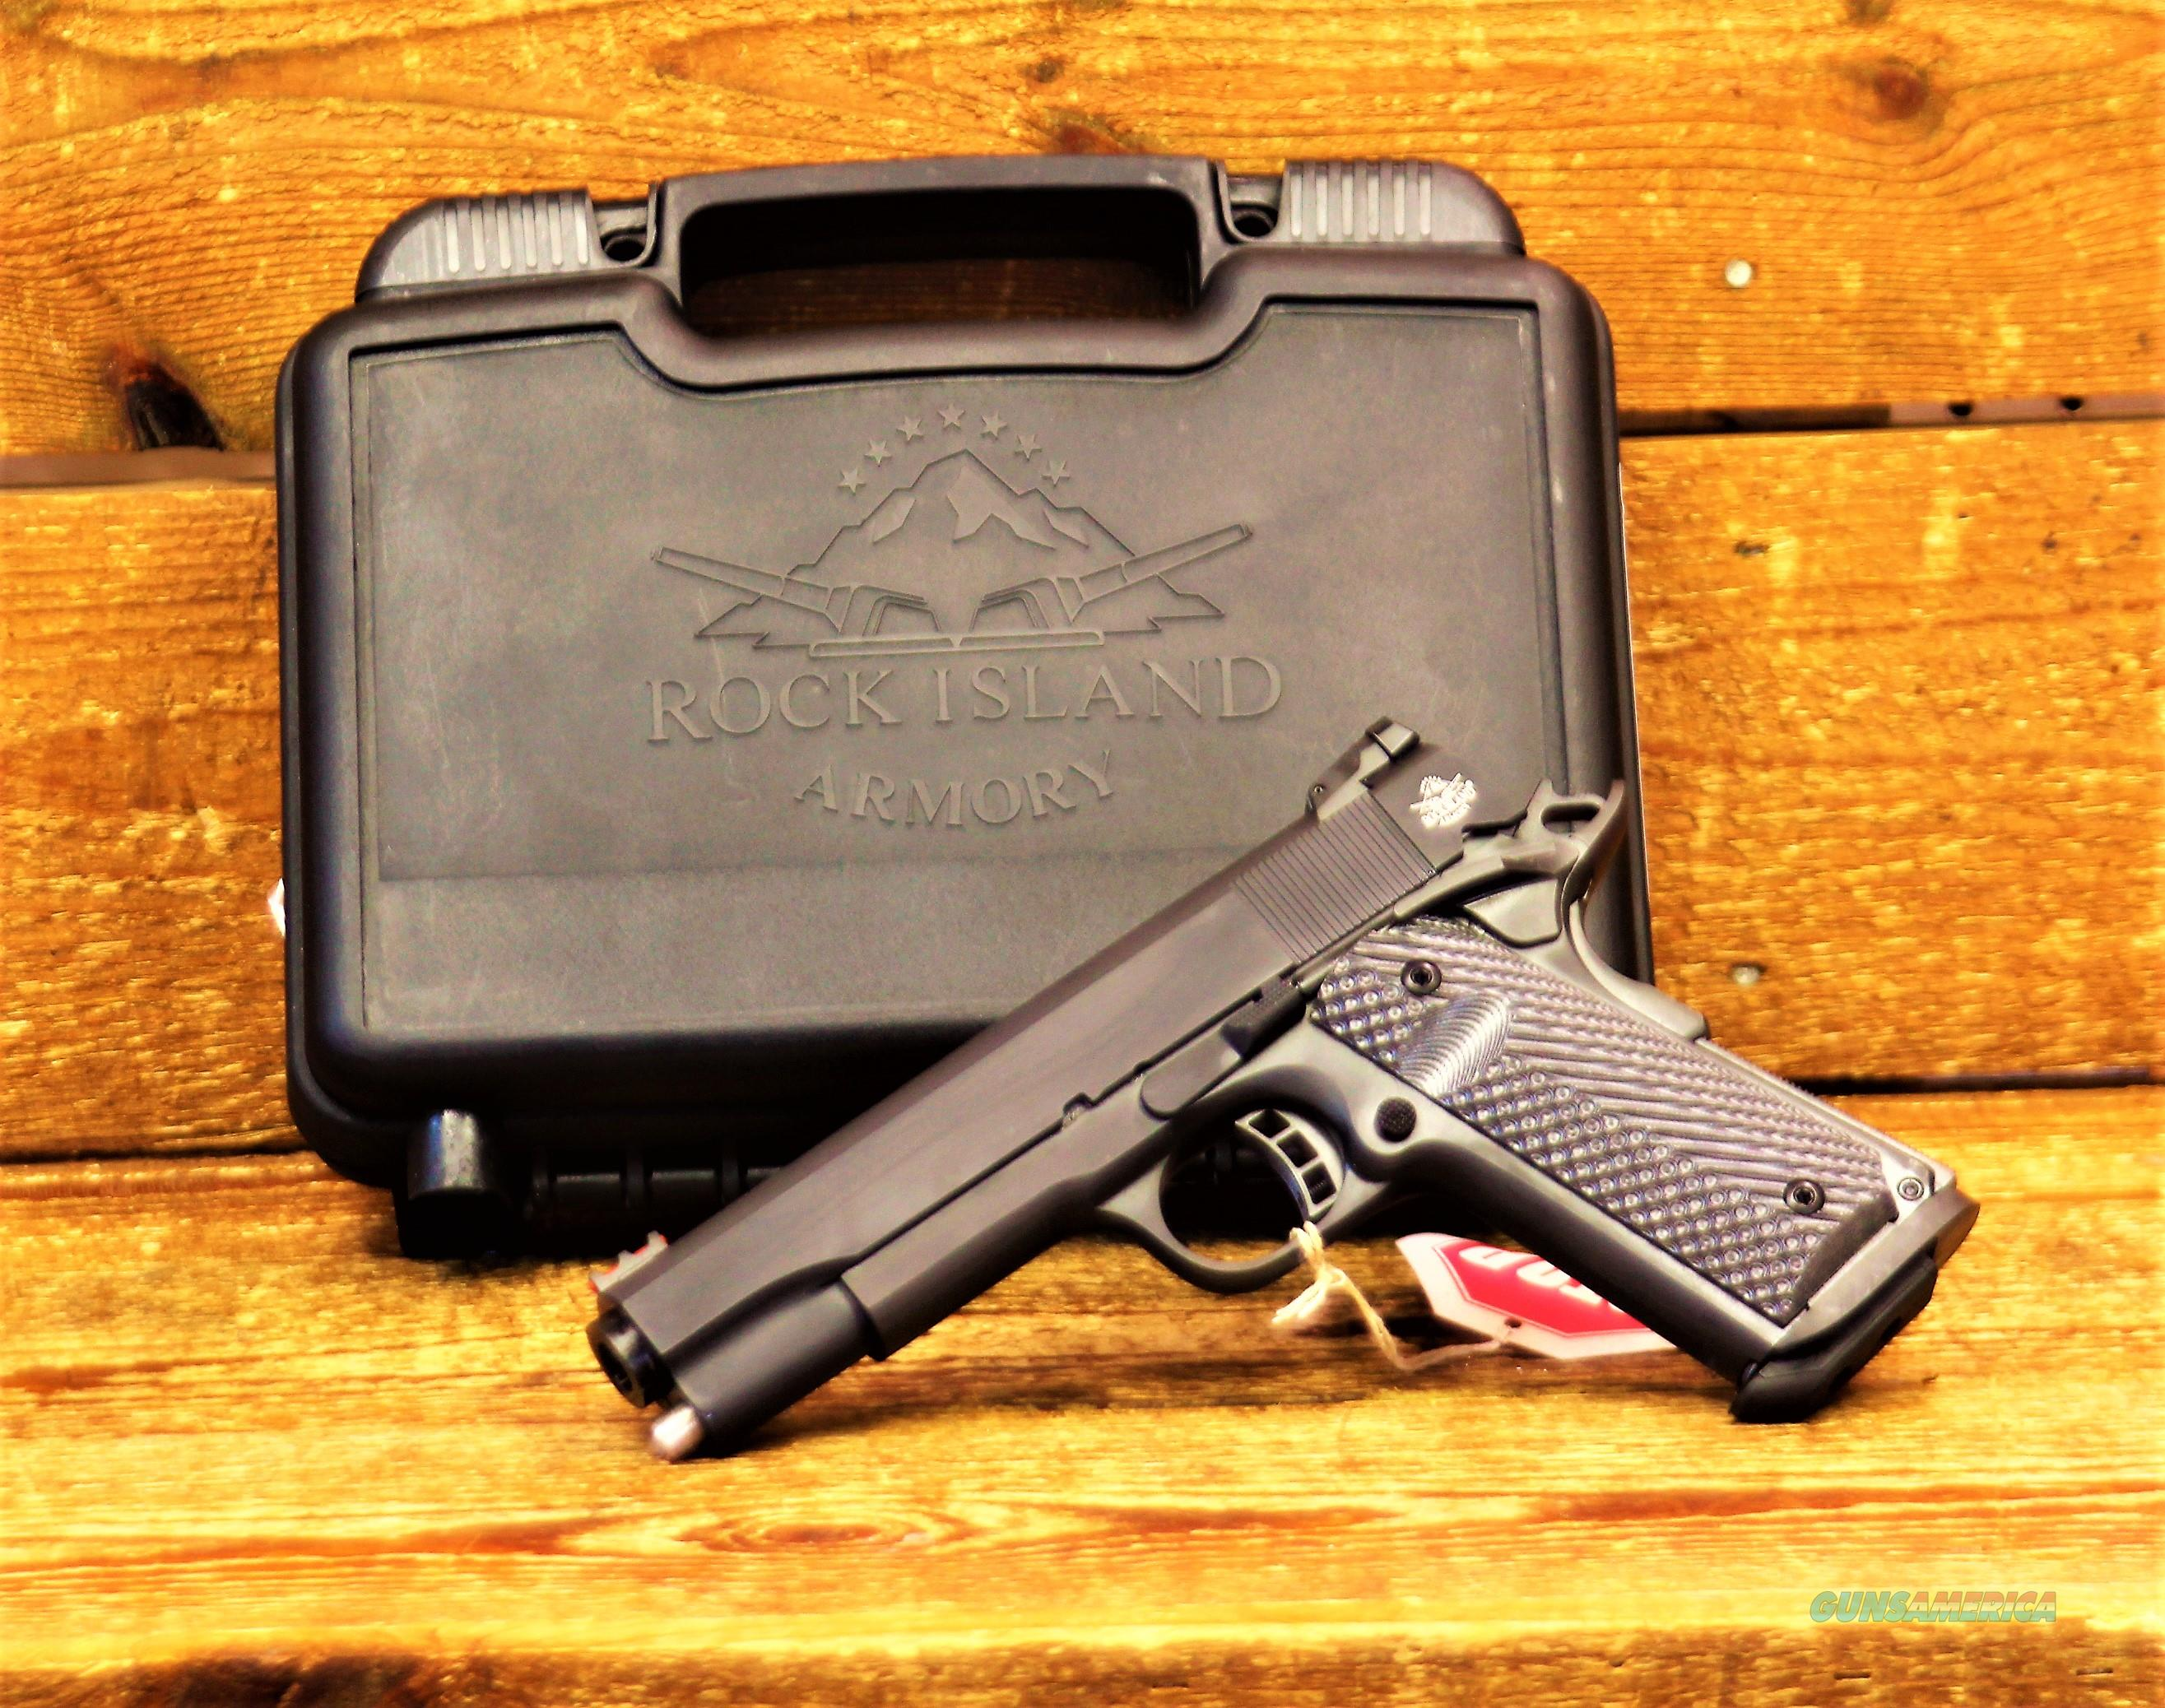 $57 EASY PAY LAYAWAY Battle Proven Design 1911A1 in 10mm Armscor Tactical II  upgraded version  Rock Island Armory RIA  1911 standard  1911-A1  parkerized enhanced  trigger & beaver tail VZ Operator II G-10 Grips Fiber Optic Sight 51991  Guns > Pistols > Rock Island Armory Pistols > Rock Island